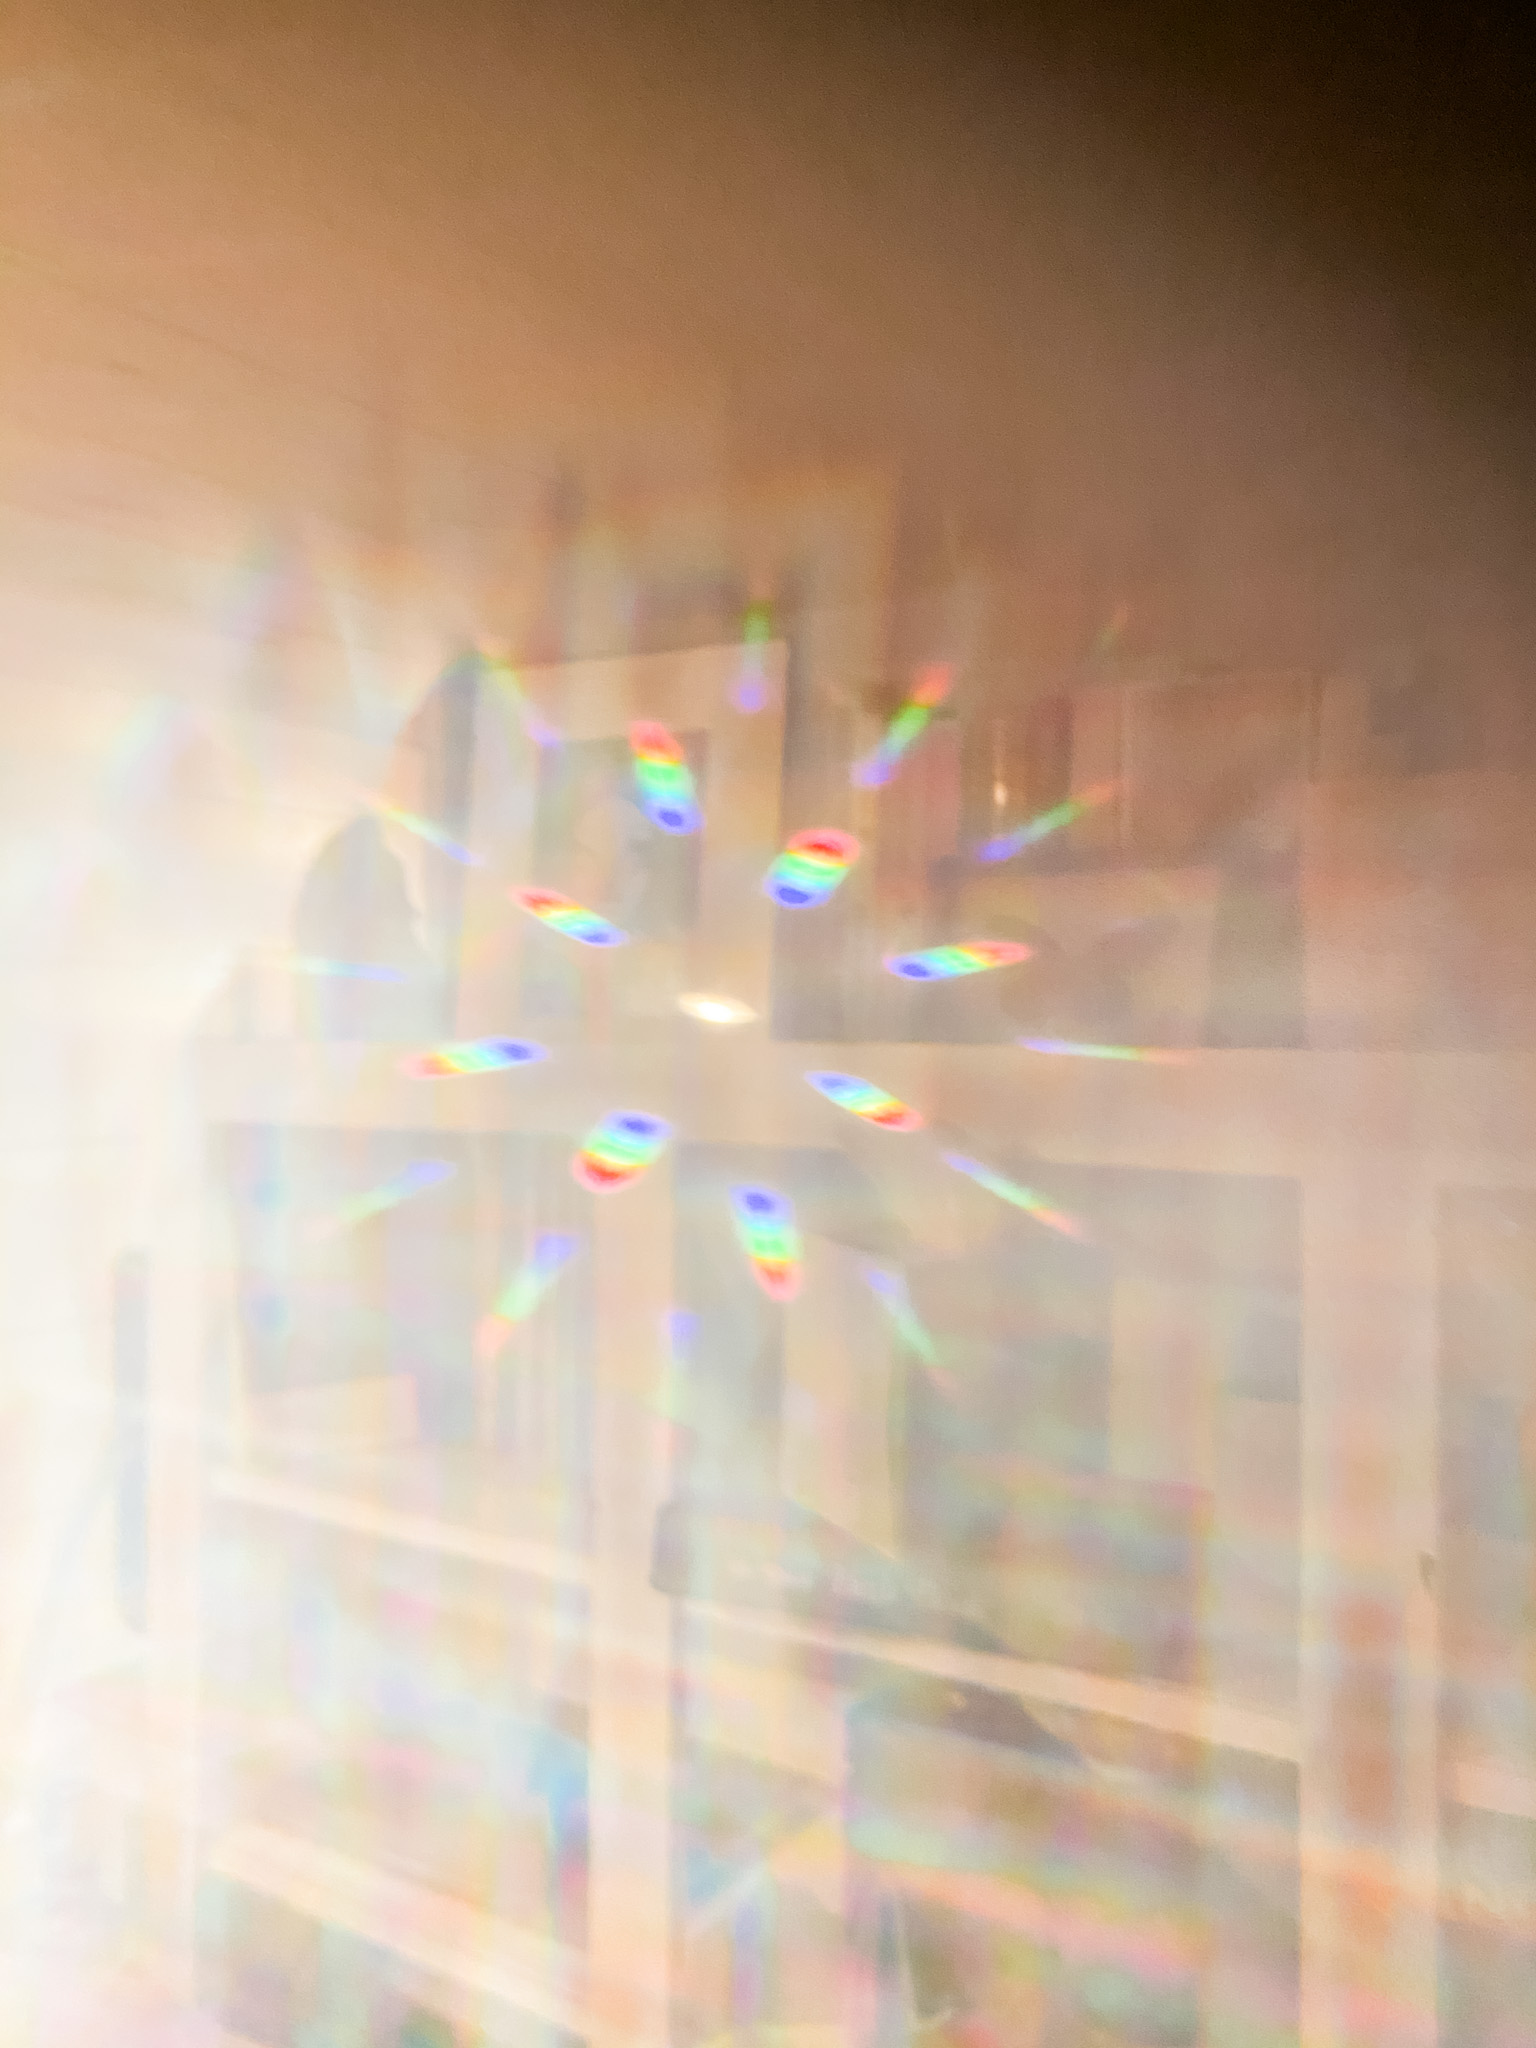 light diffracting into rainbow prisms